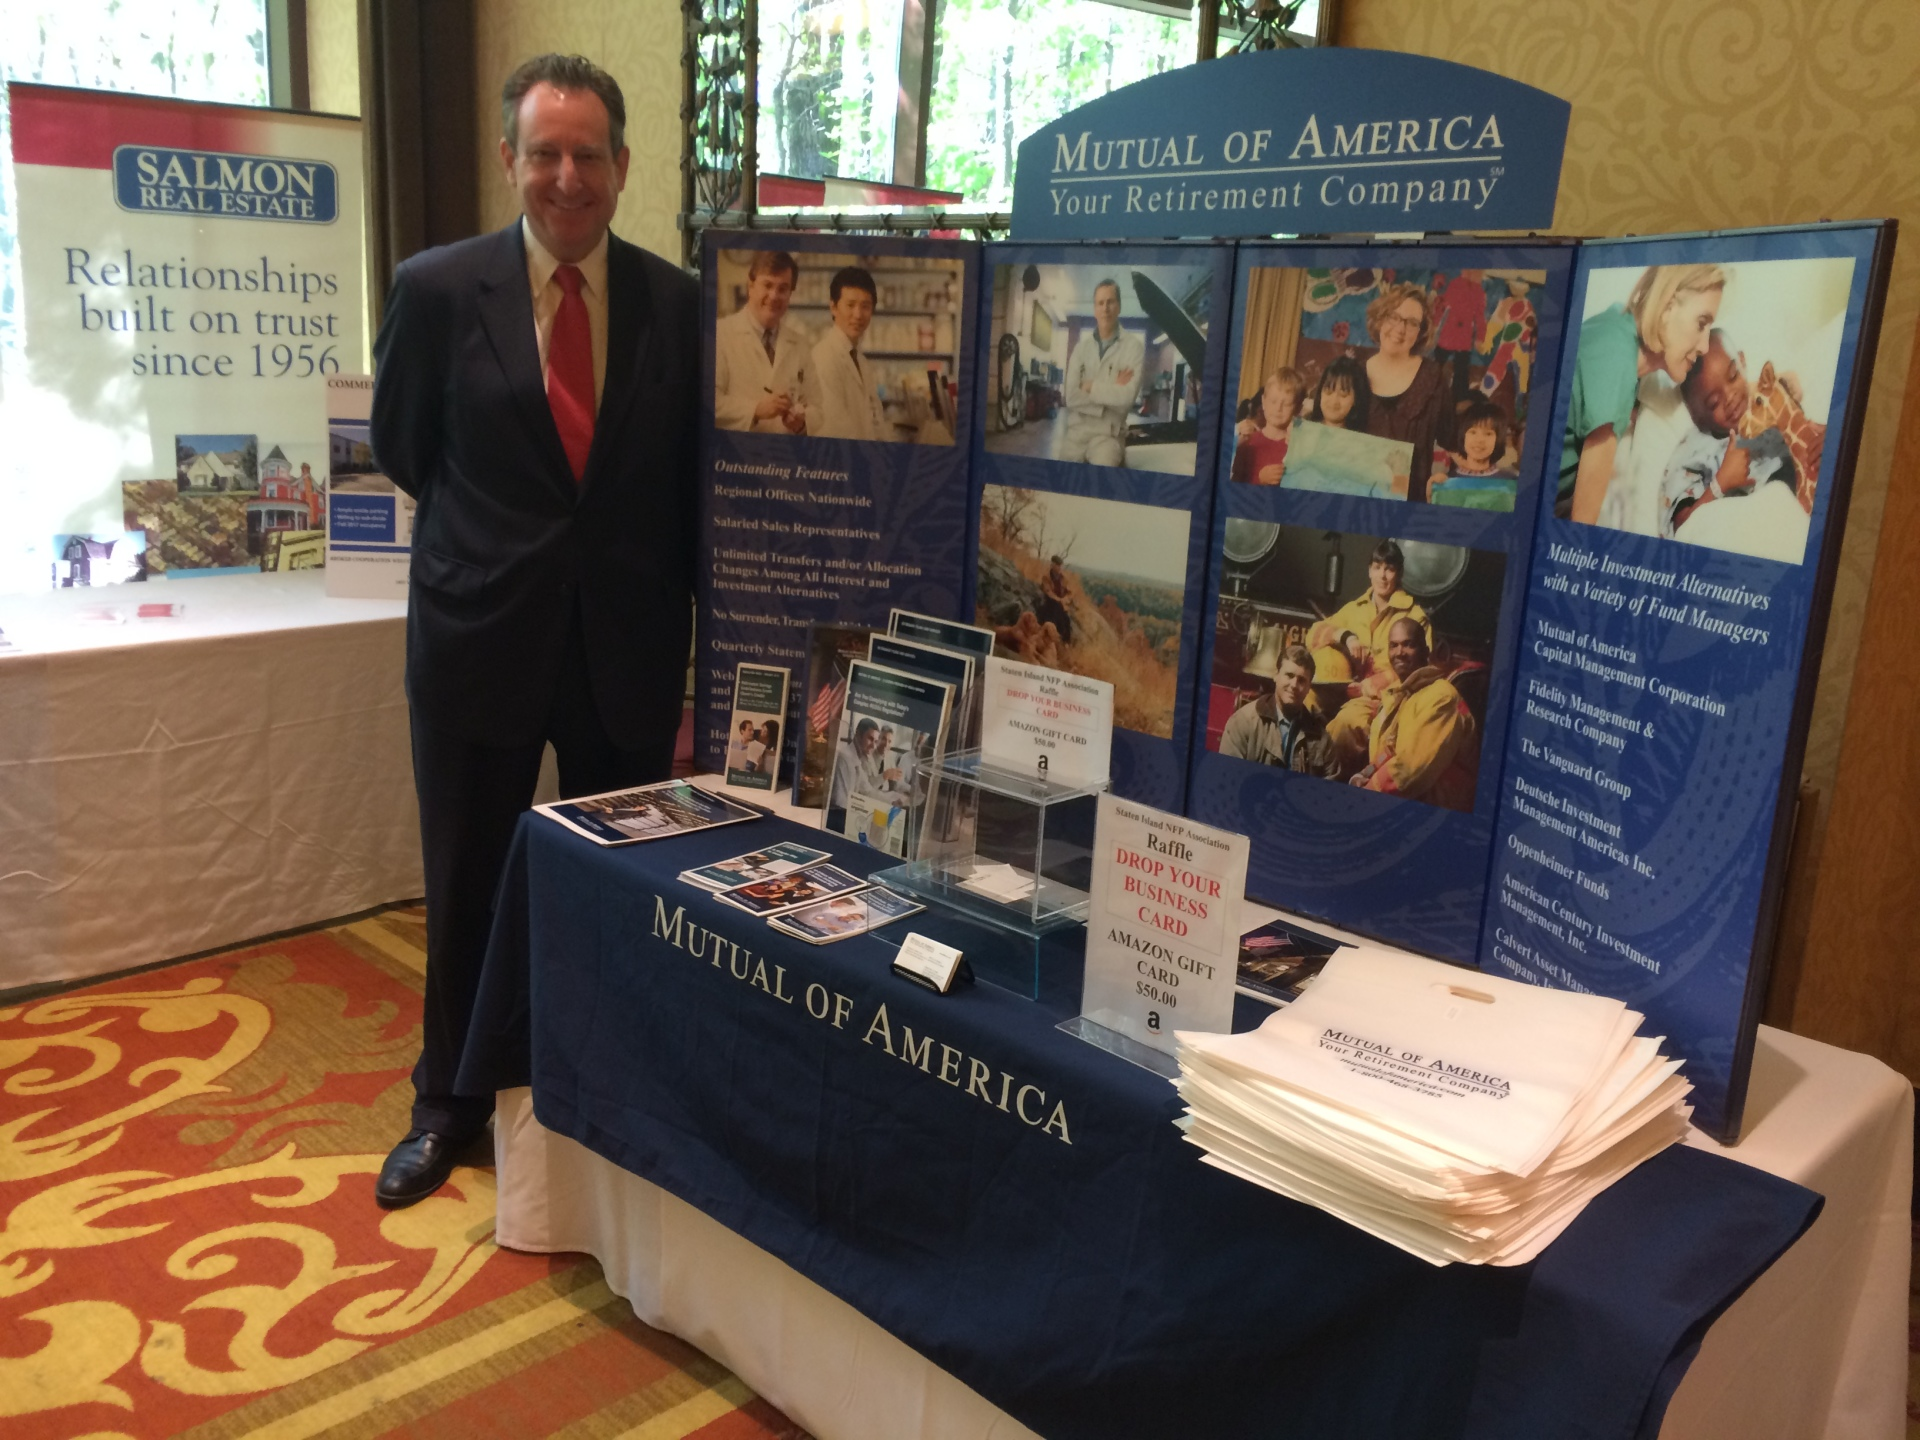 Vendors Row: Mutual of America